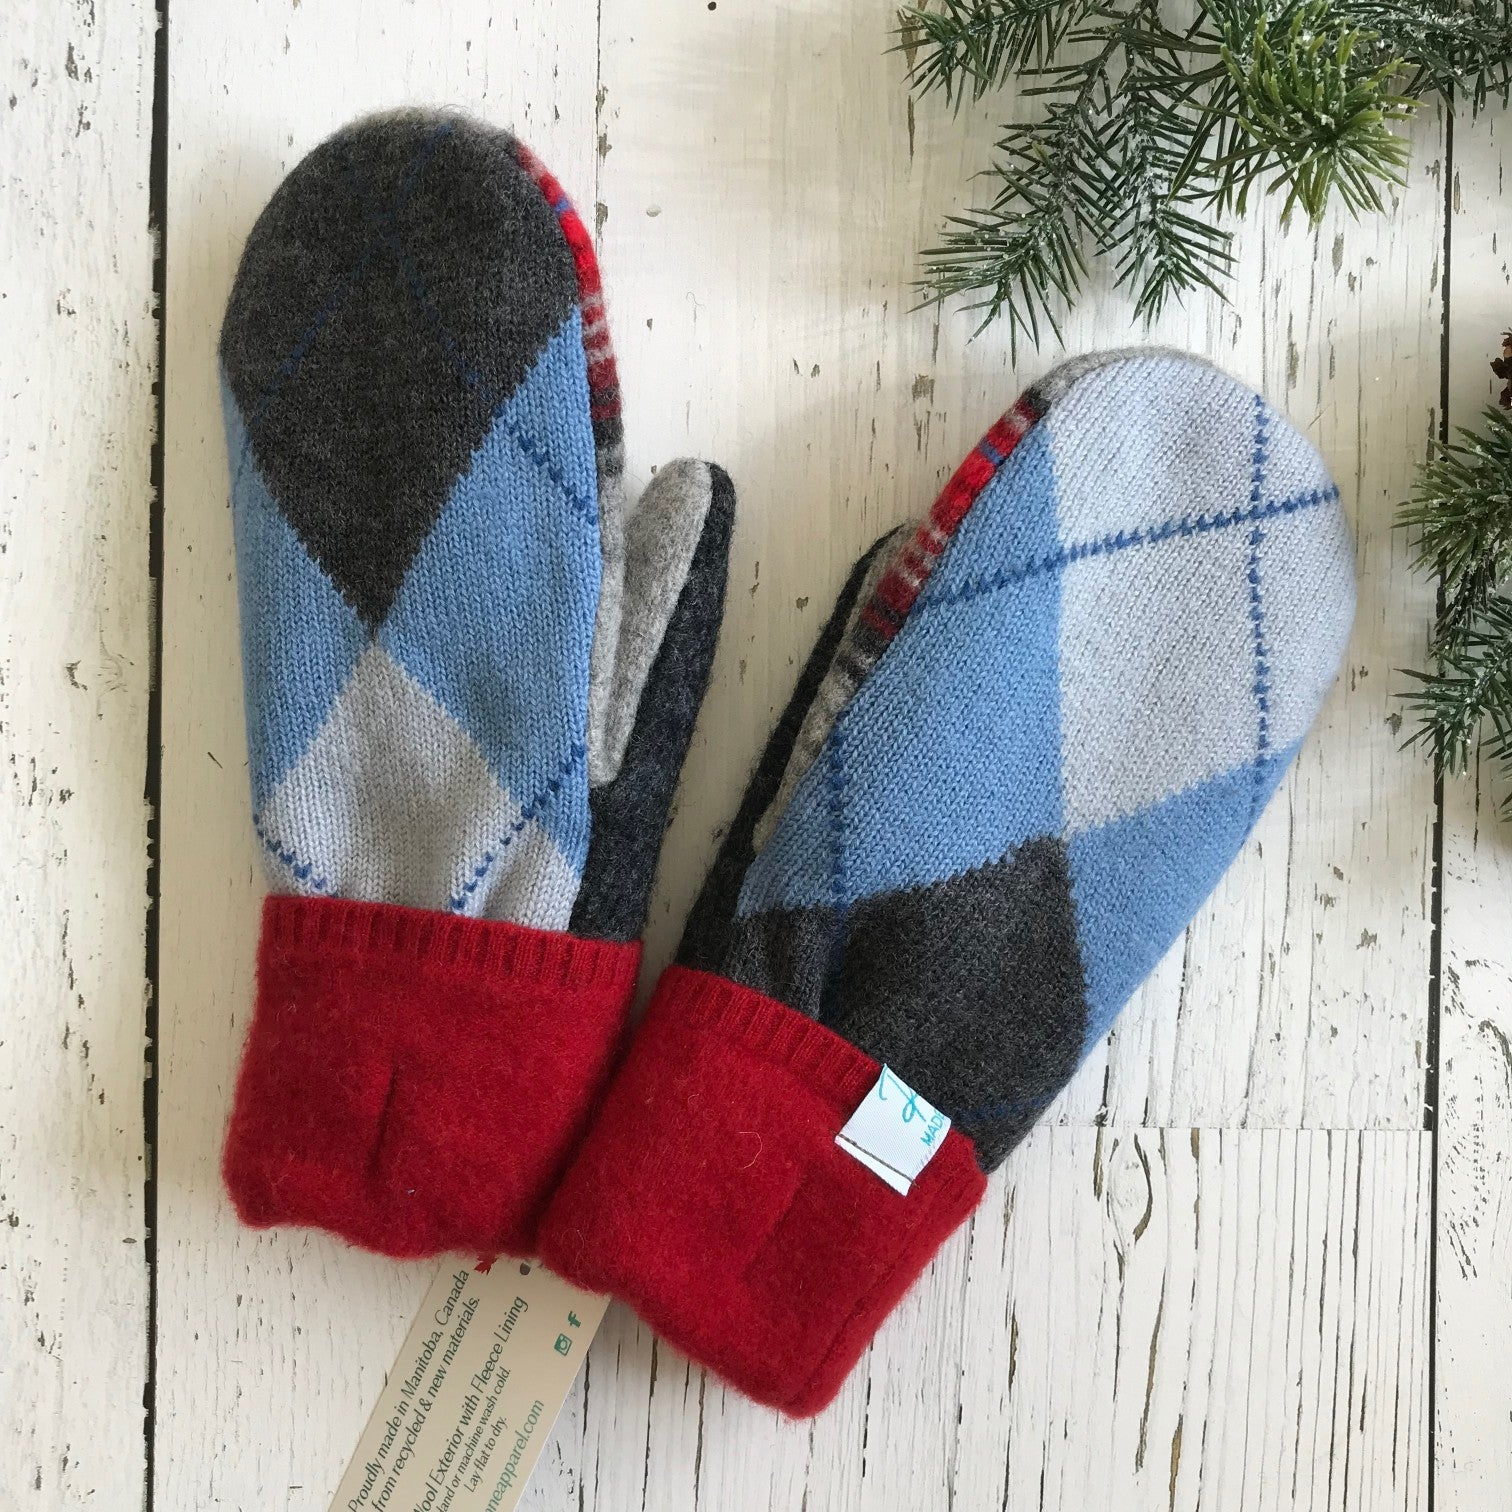 recycled wool mitts in blue and charcoal argyle, red, black and grey stripe, red cuff